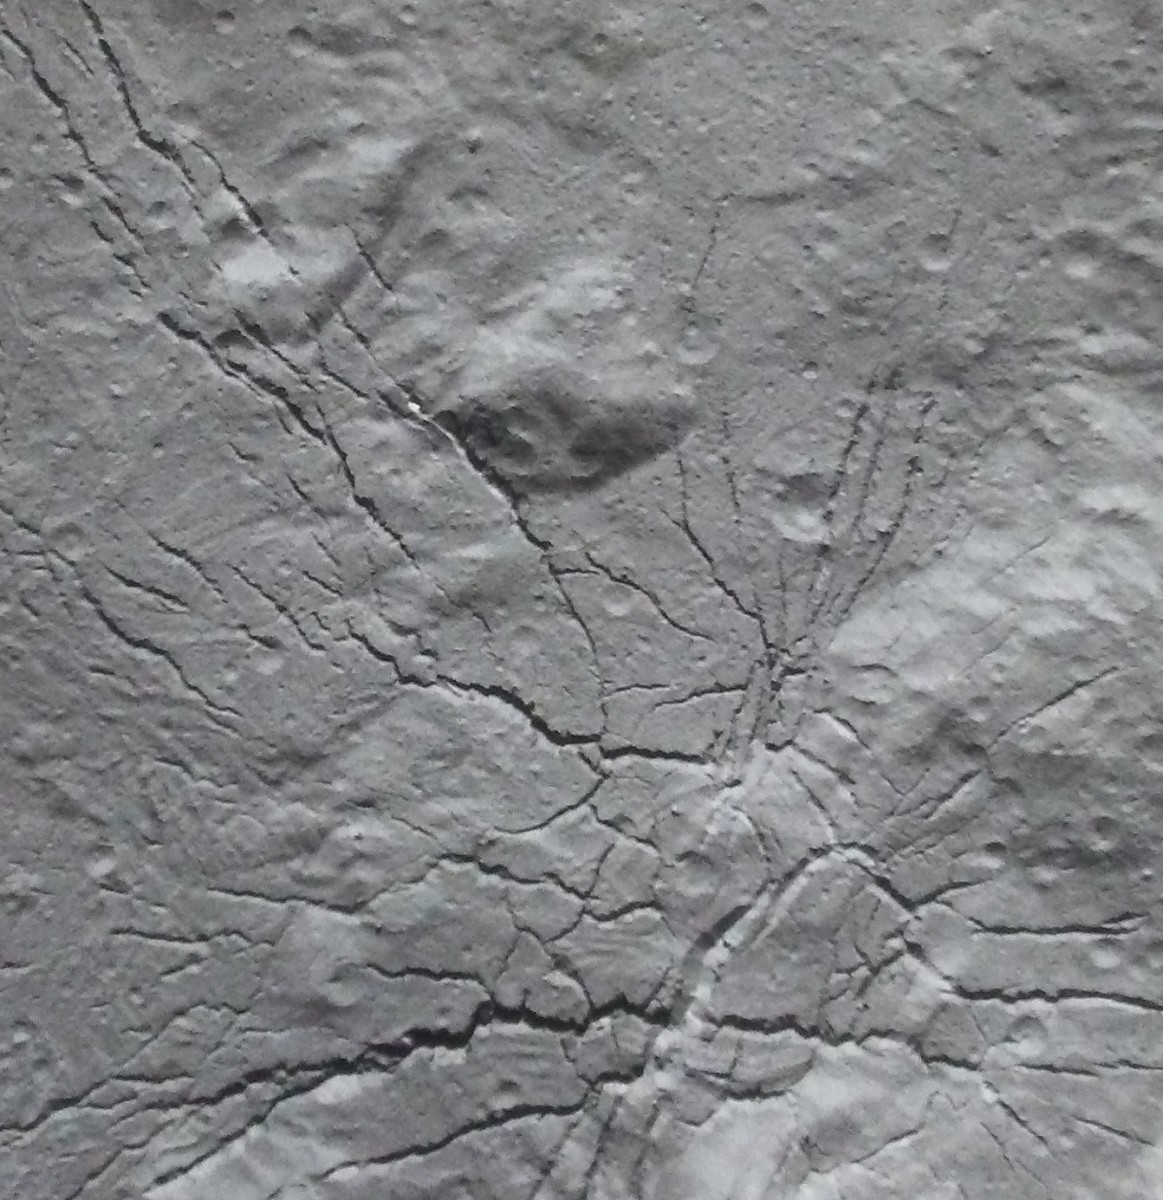 Cracks in Occator Crater, possibly from subsurface cryovolcano pressure.